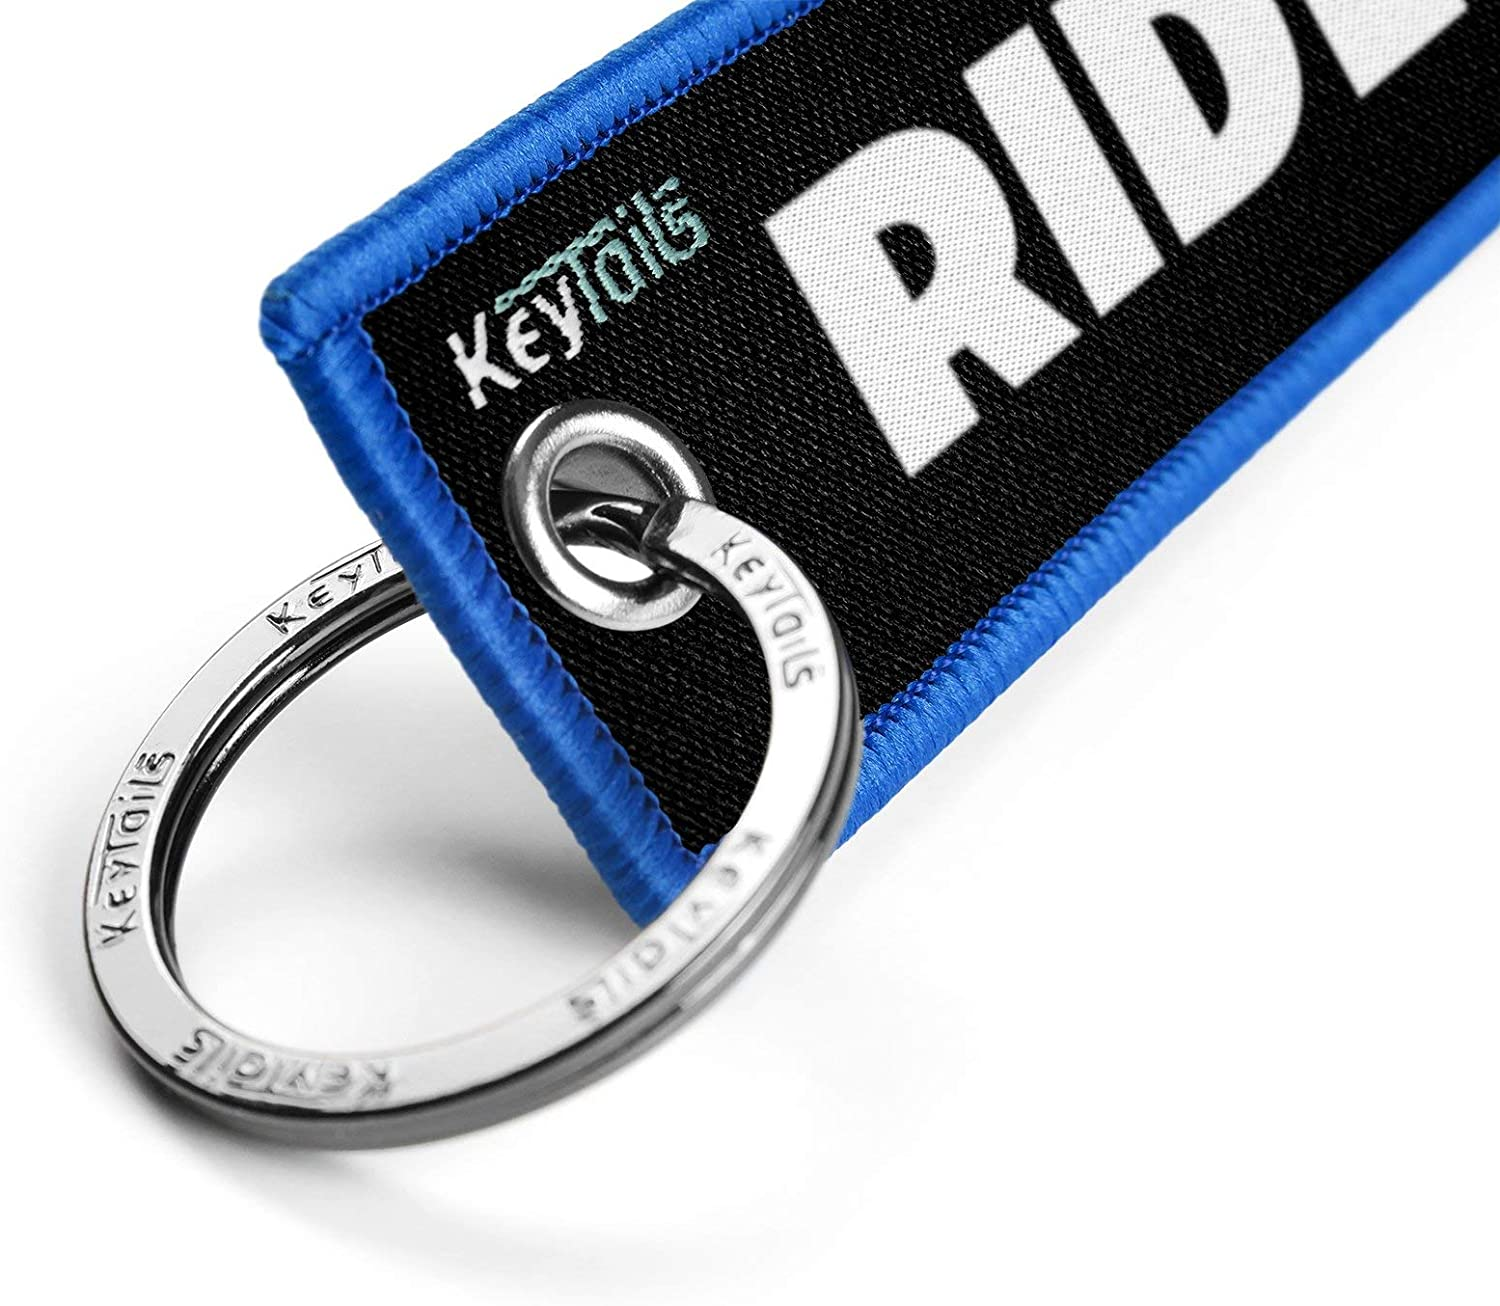 Scooter UTV KEYTAILS Keychains Ride Or Die Premium Quality Key Tag for Motorcycle ATV